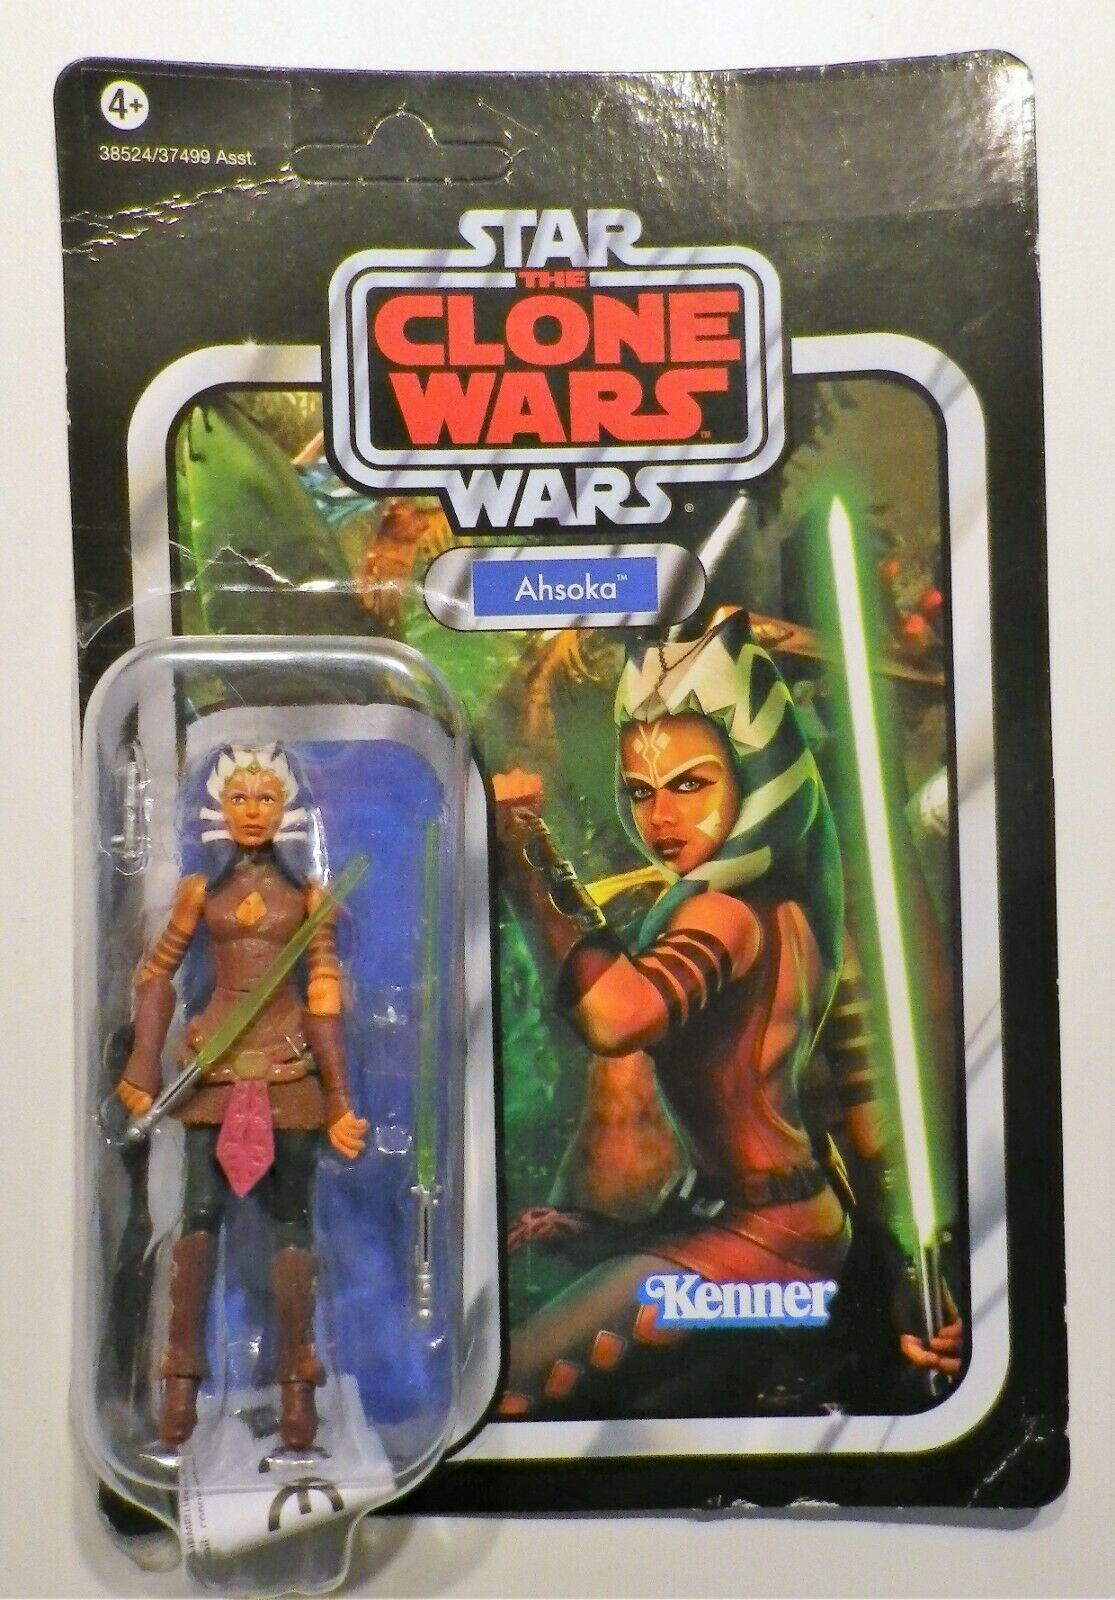 STAR WARS Ahsoka vintage collection